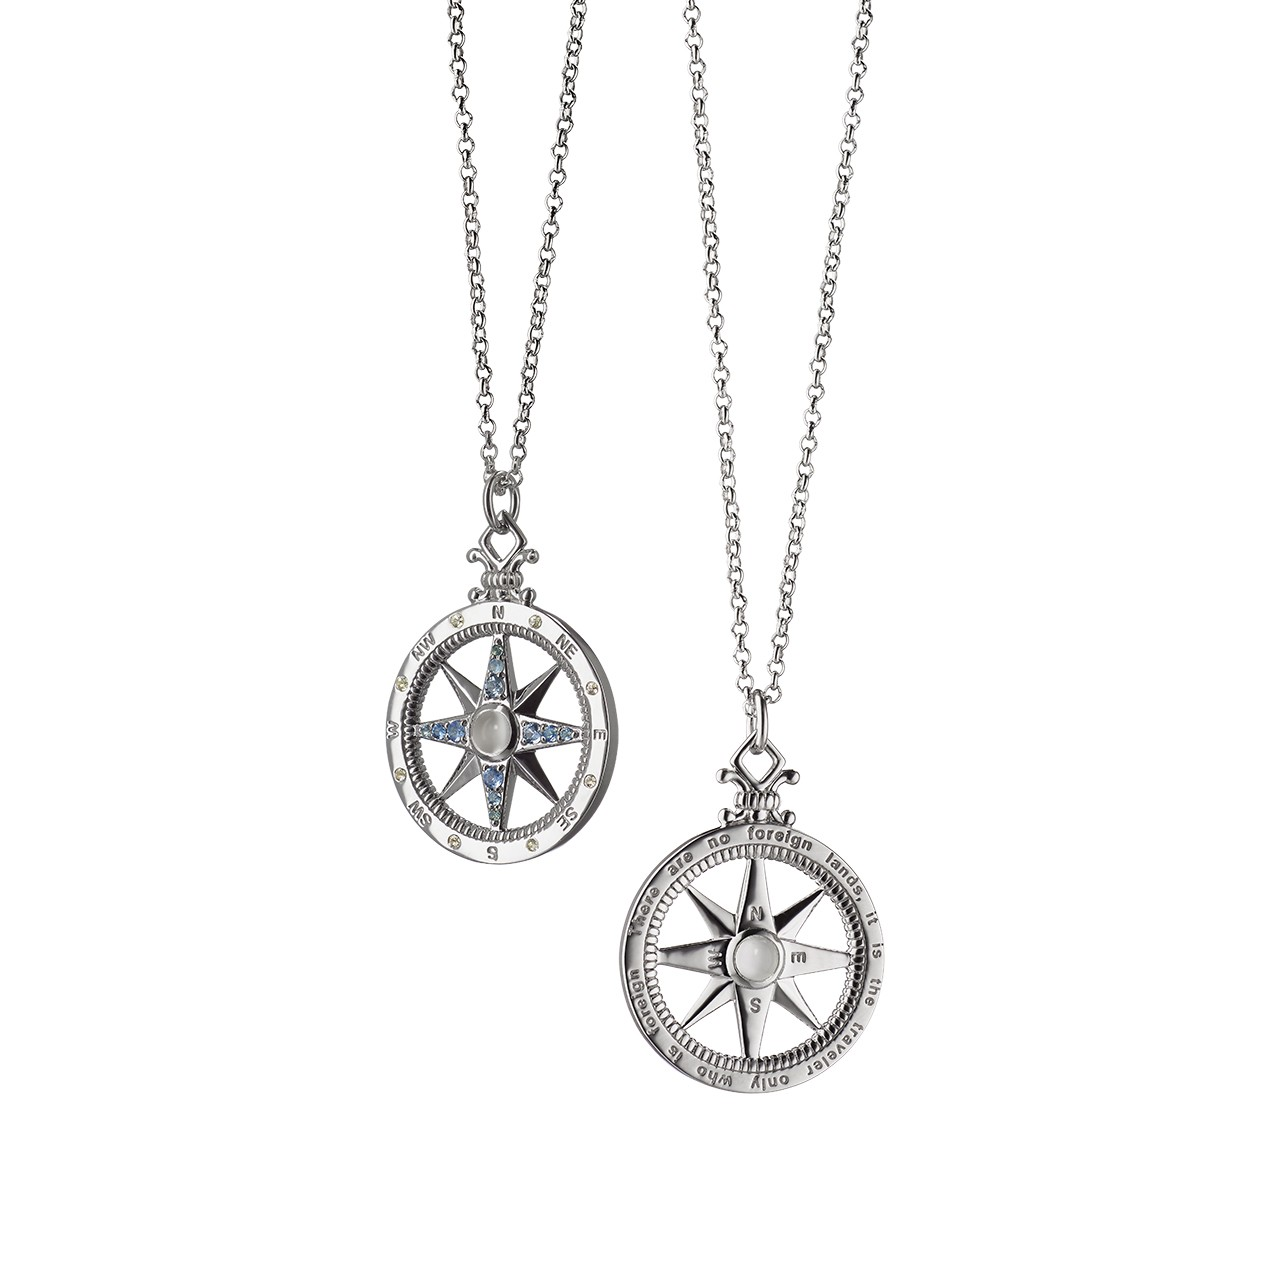 travel-global-compass-charm-necklace-ef5